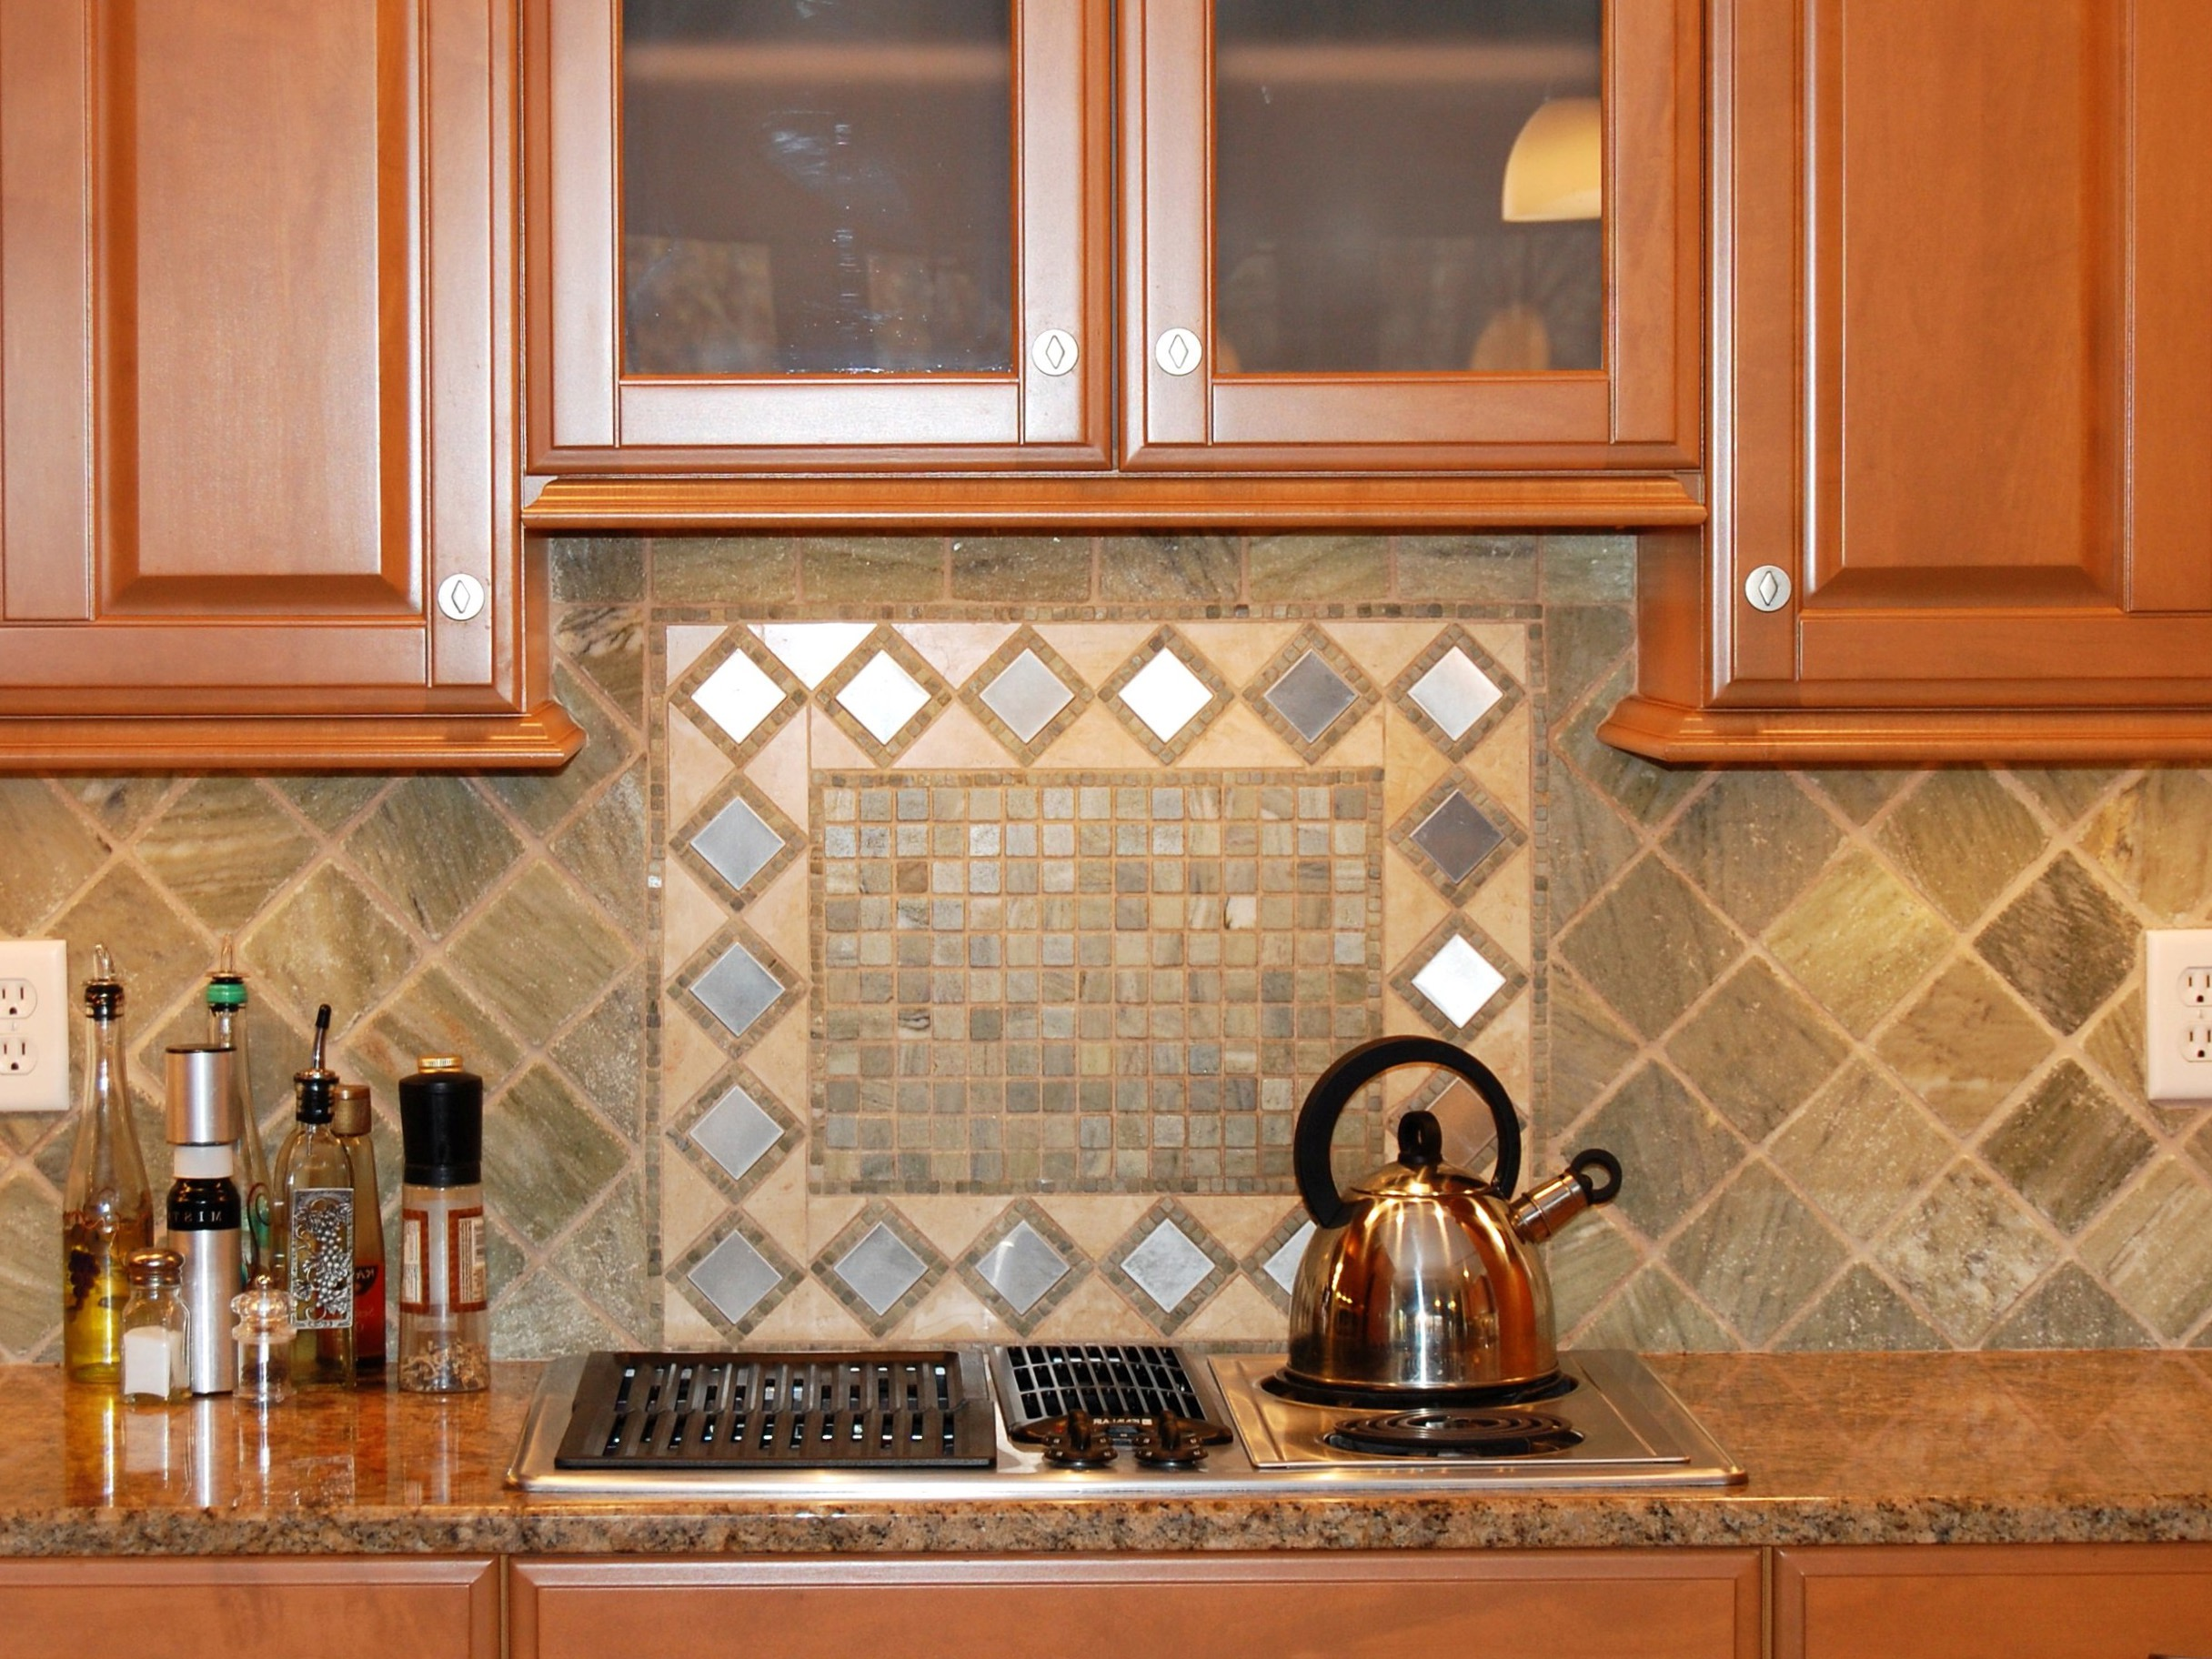 kitchen backsplash from diamond shaped stainless steel accent